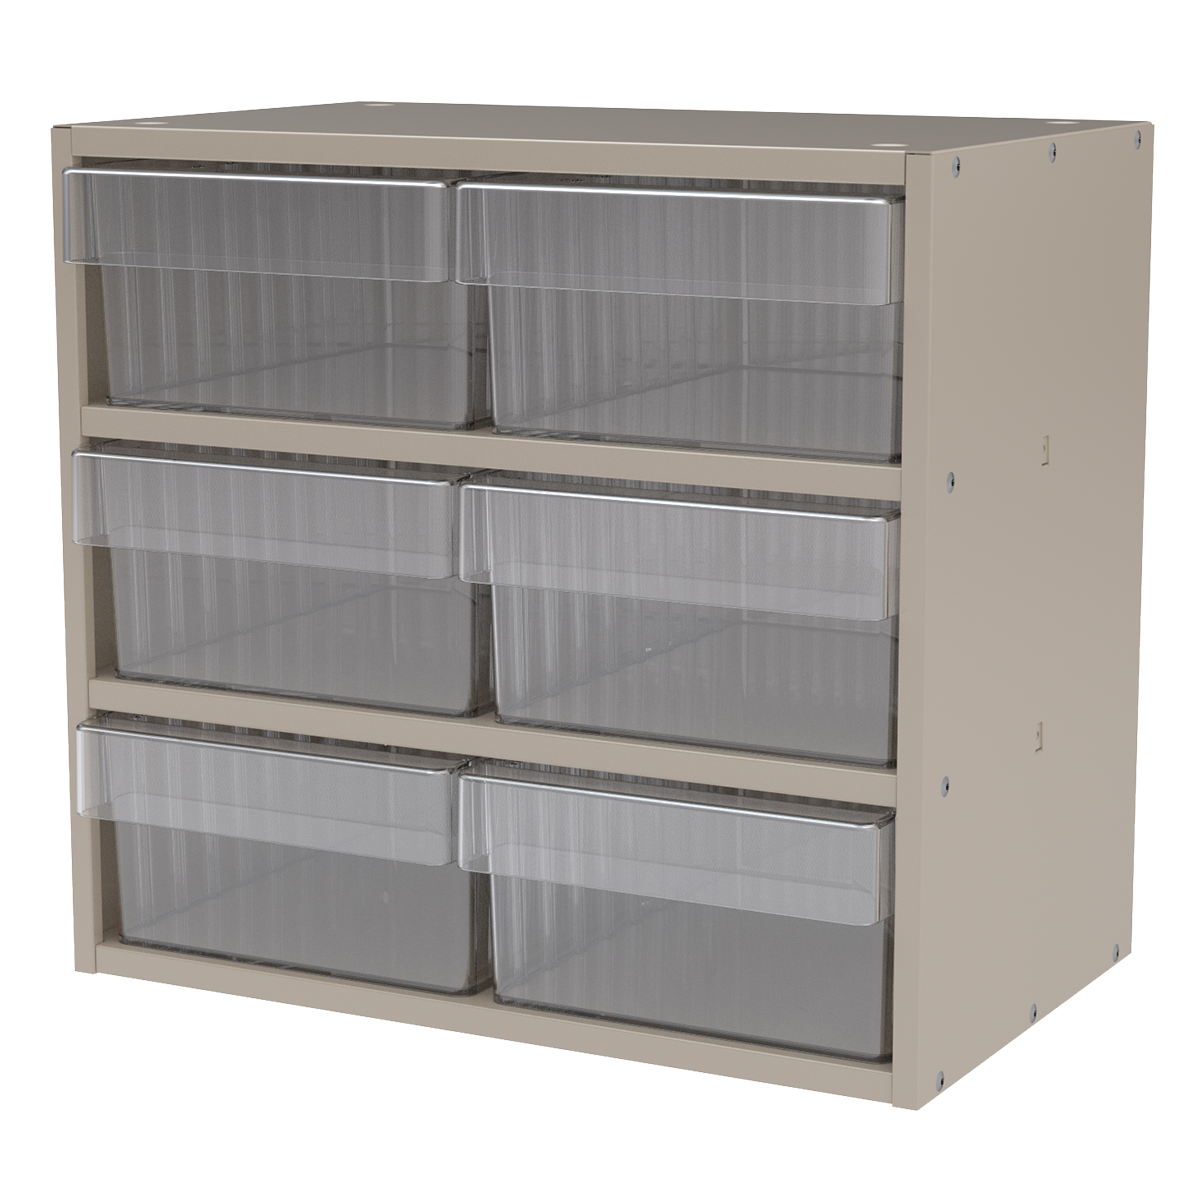 Item DISCONTINUED by Manufacturer.  Modular Cabinet, 18x11x16, 6 Drawers, Putty/Clear (AD1811P82CRY).  This item sold in carton quantities of 1.